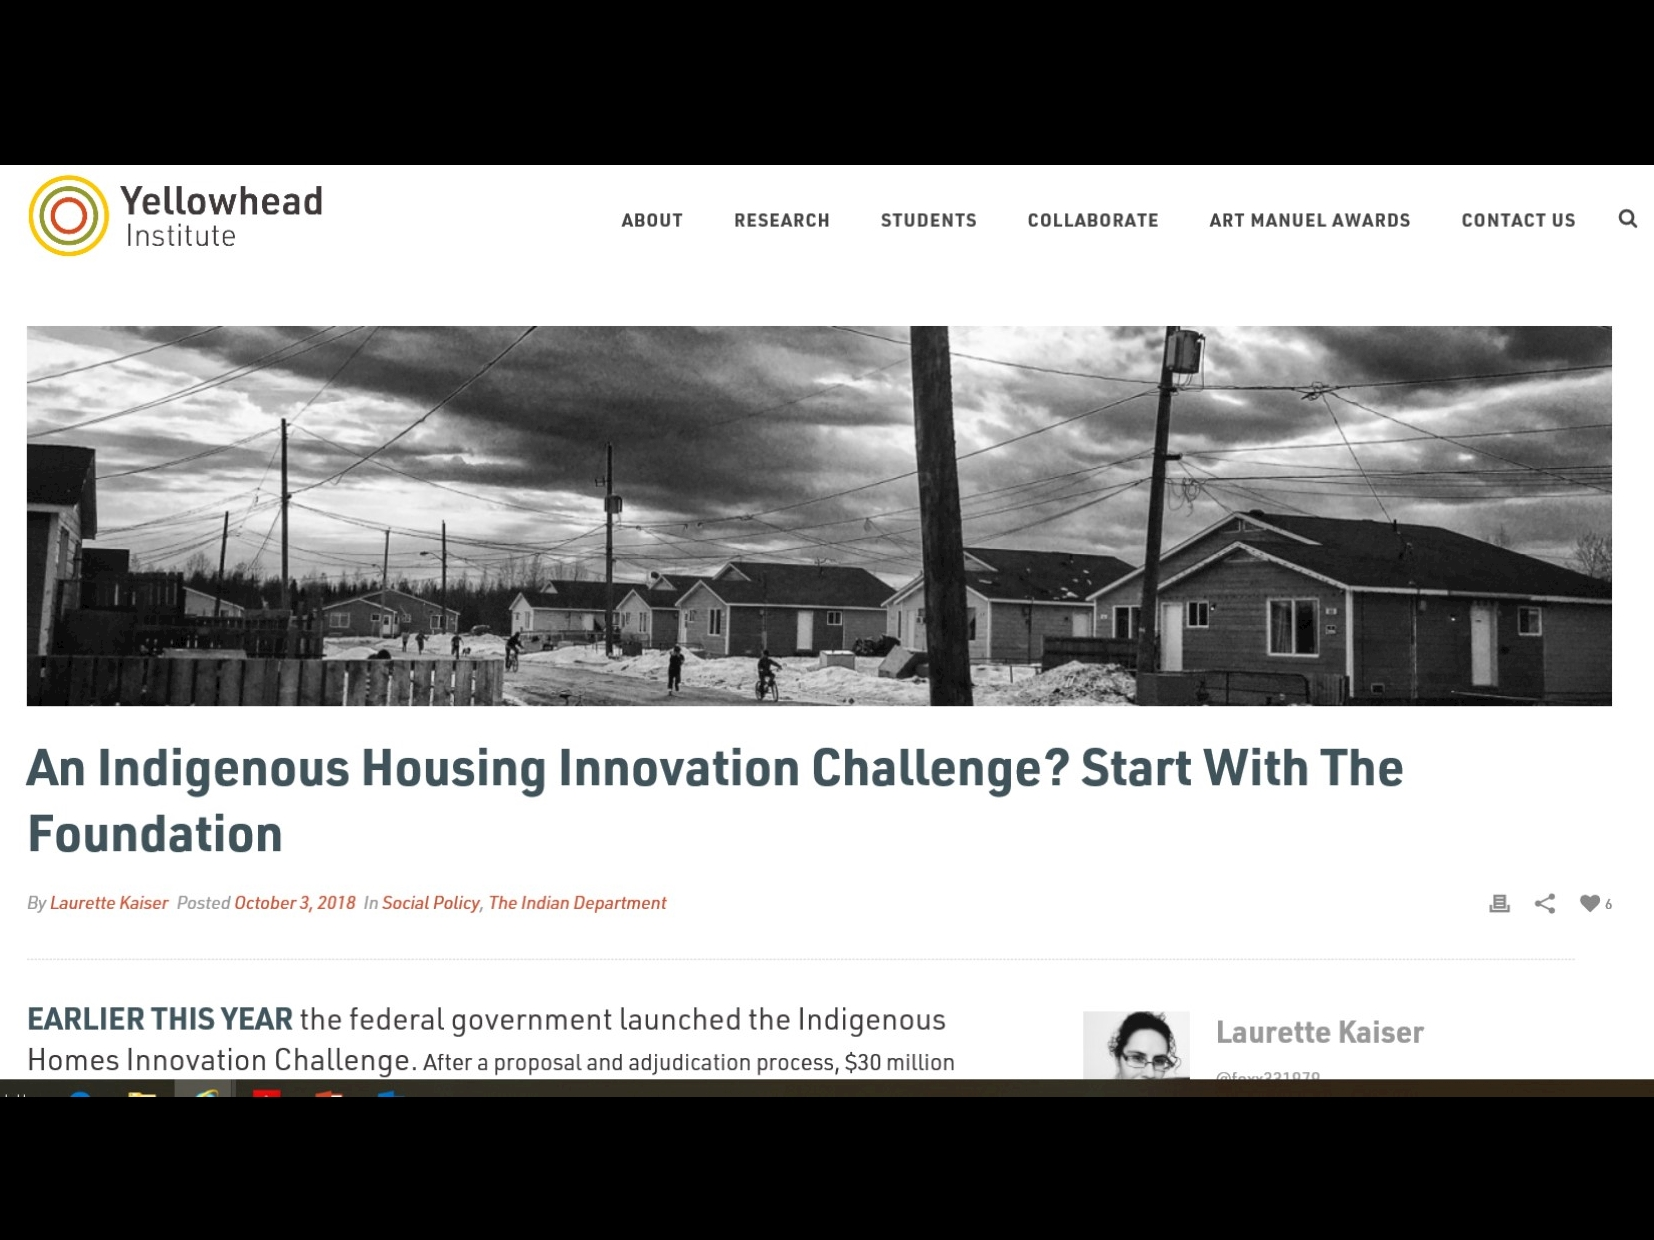 An Indigenous Housing Innovation Challenge? Start with the Foundation